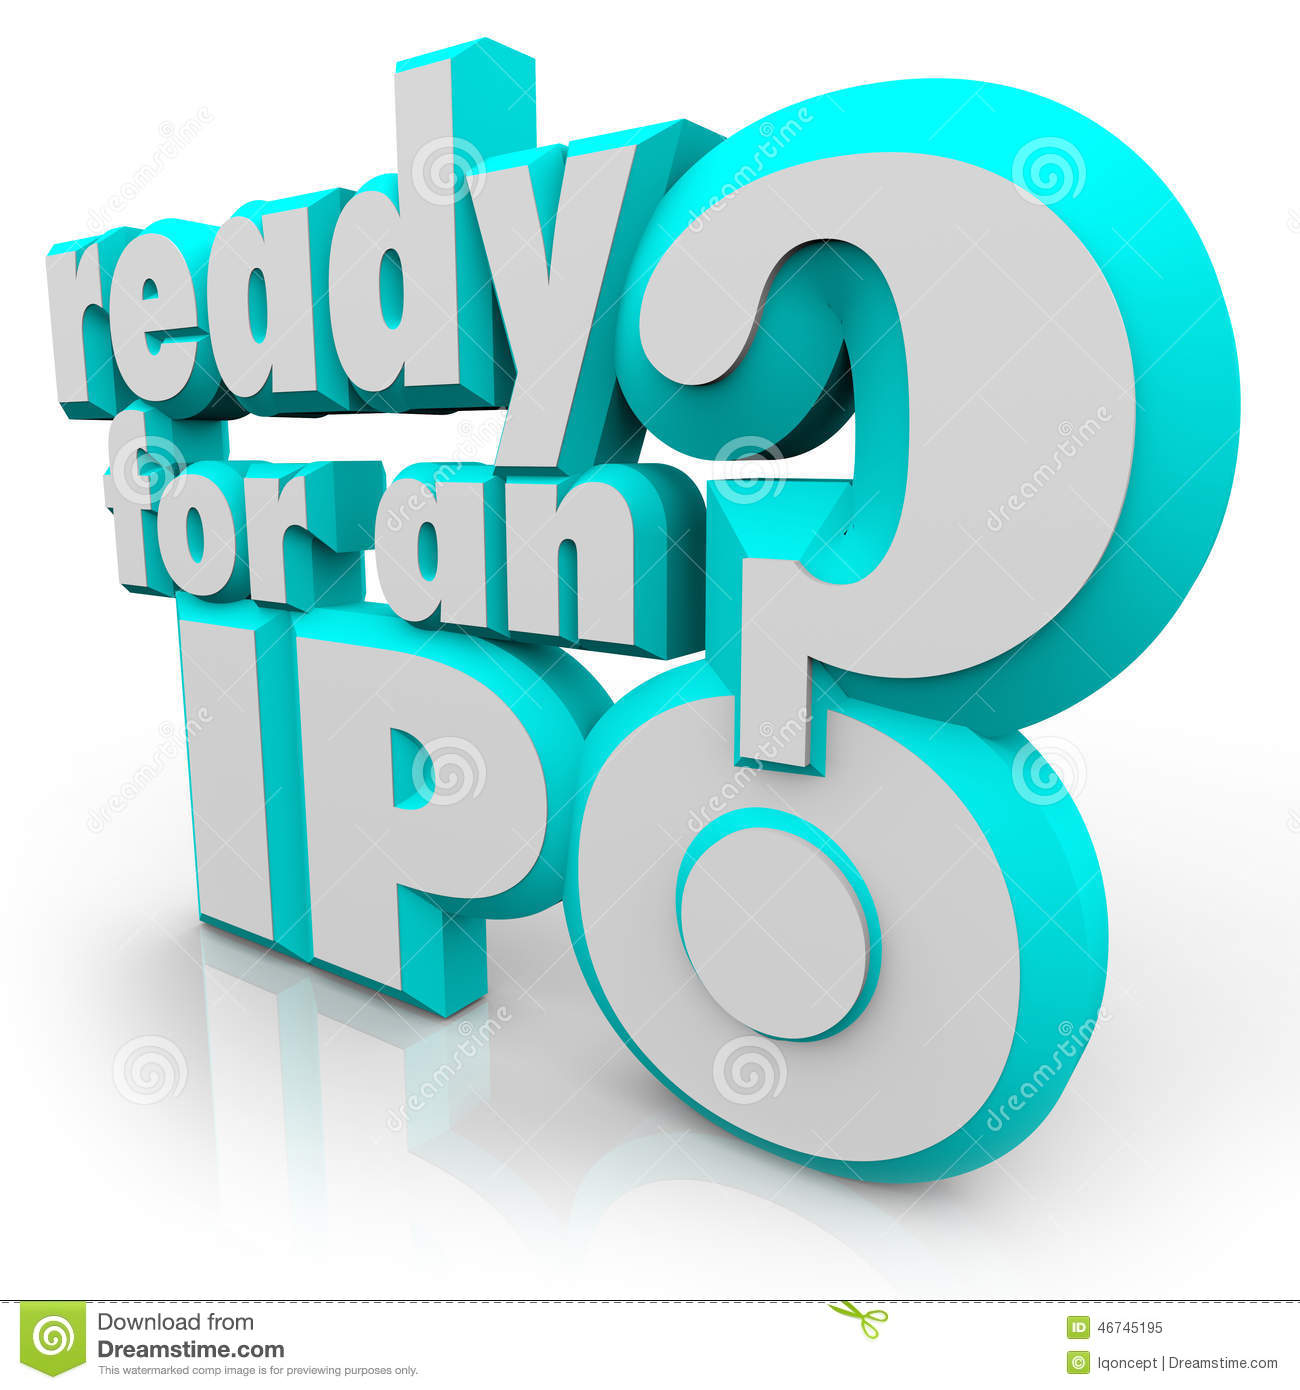 Ipo what is it